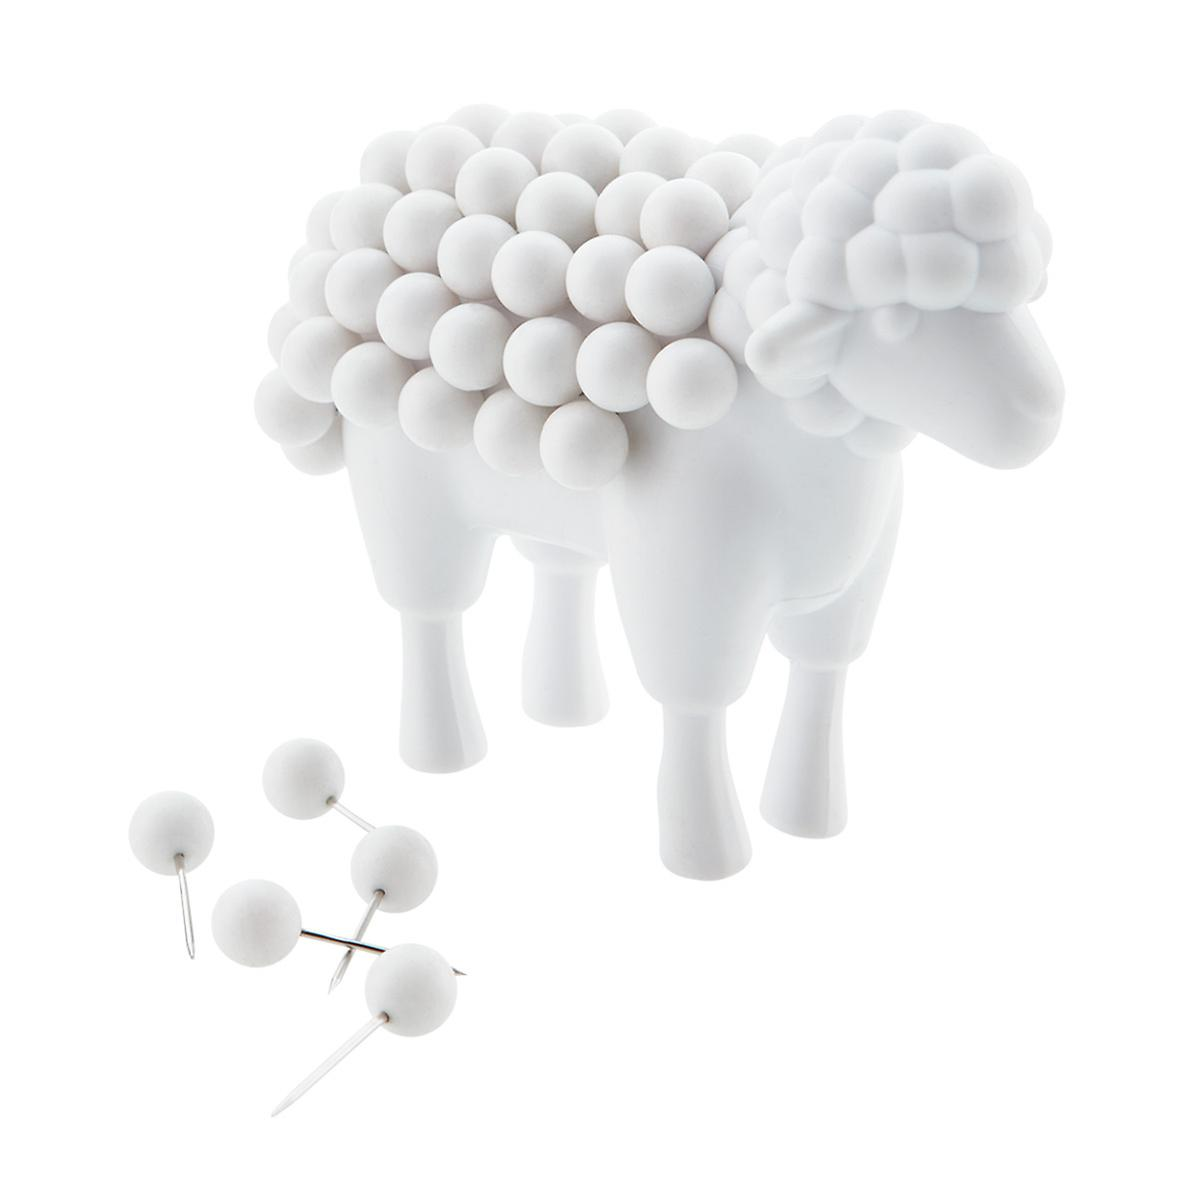 Fred & Friends Stuck On Ewe Push Pins by Container Store